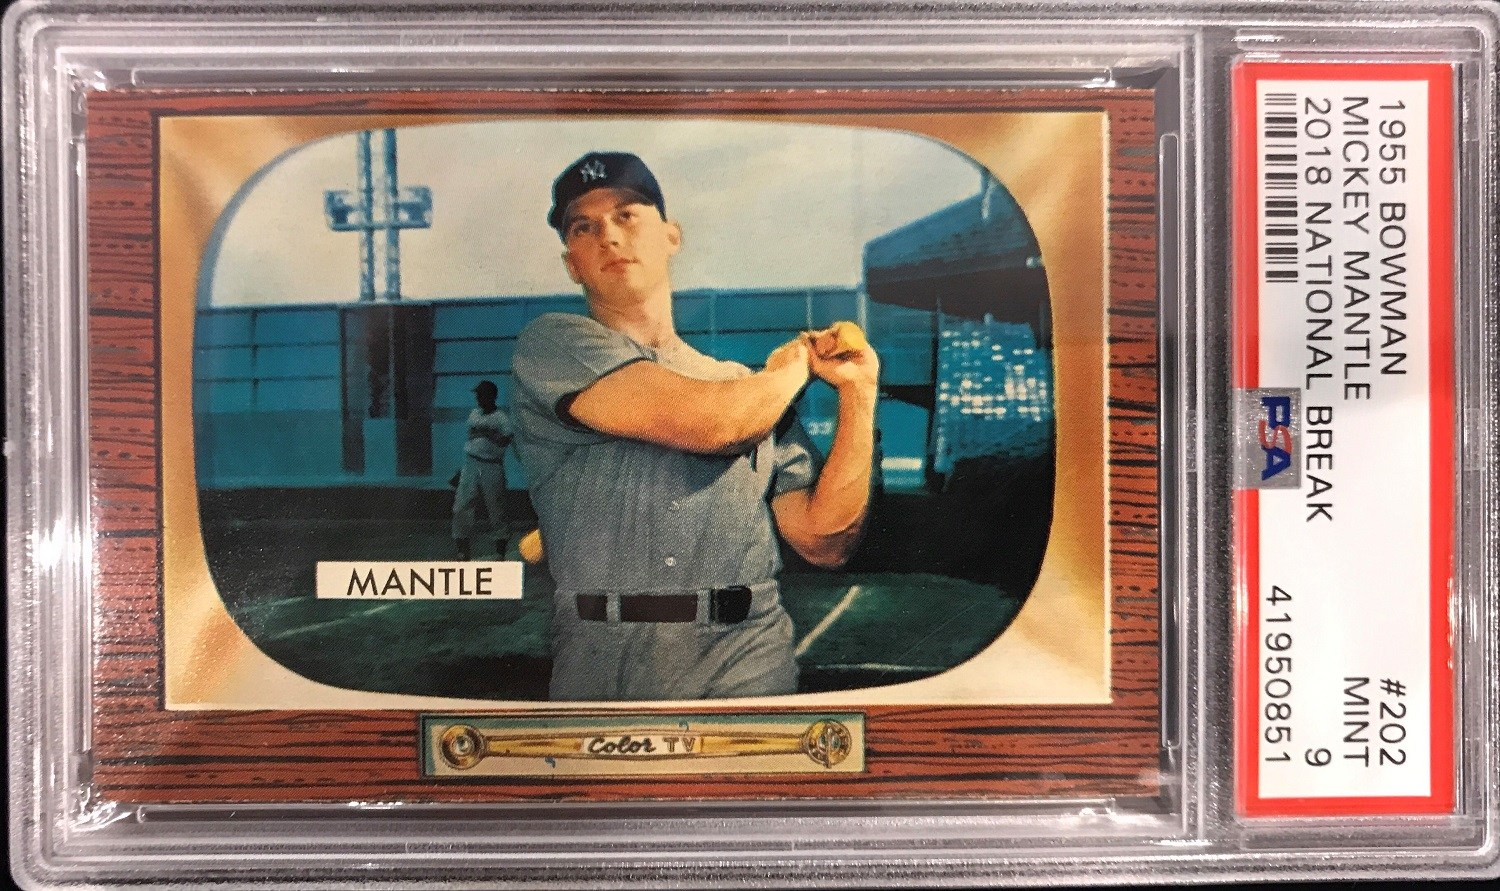 Maryland Collector Snags Mickey Mantle Baseball Card Worth At Least